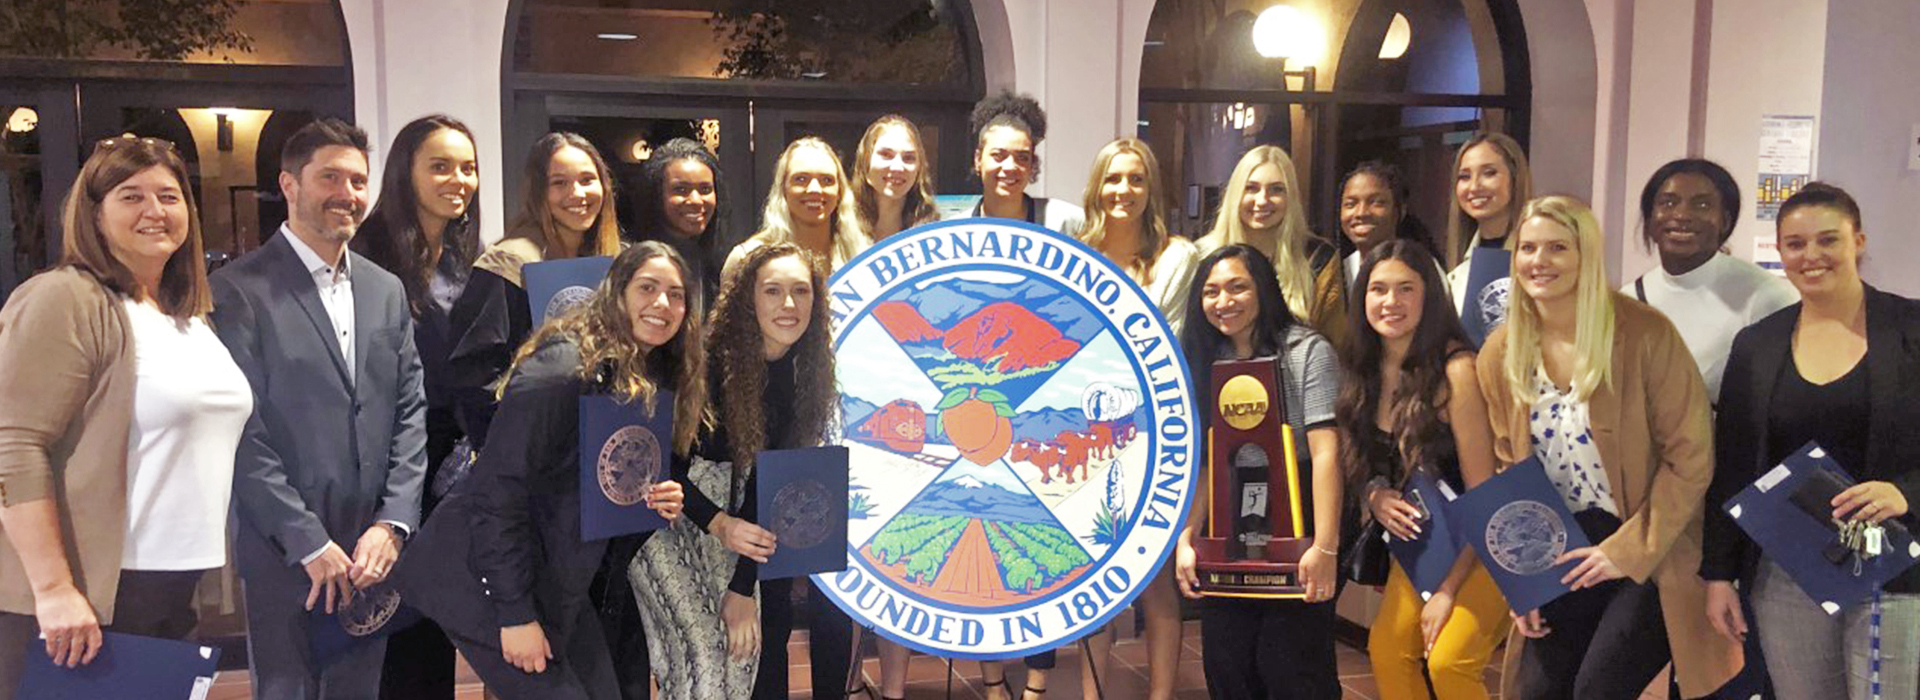 CSUSB's championship volleyball team honored by San Bernardino City Council